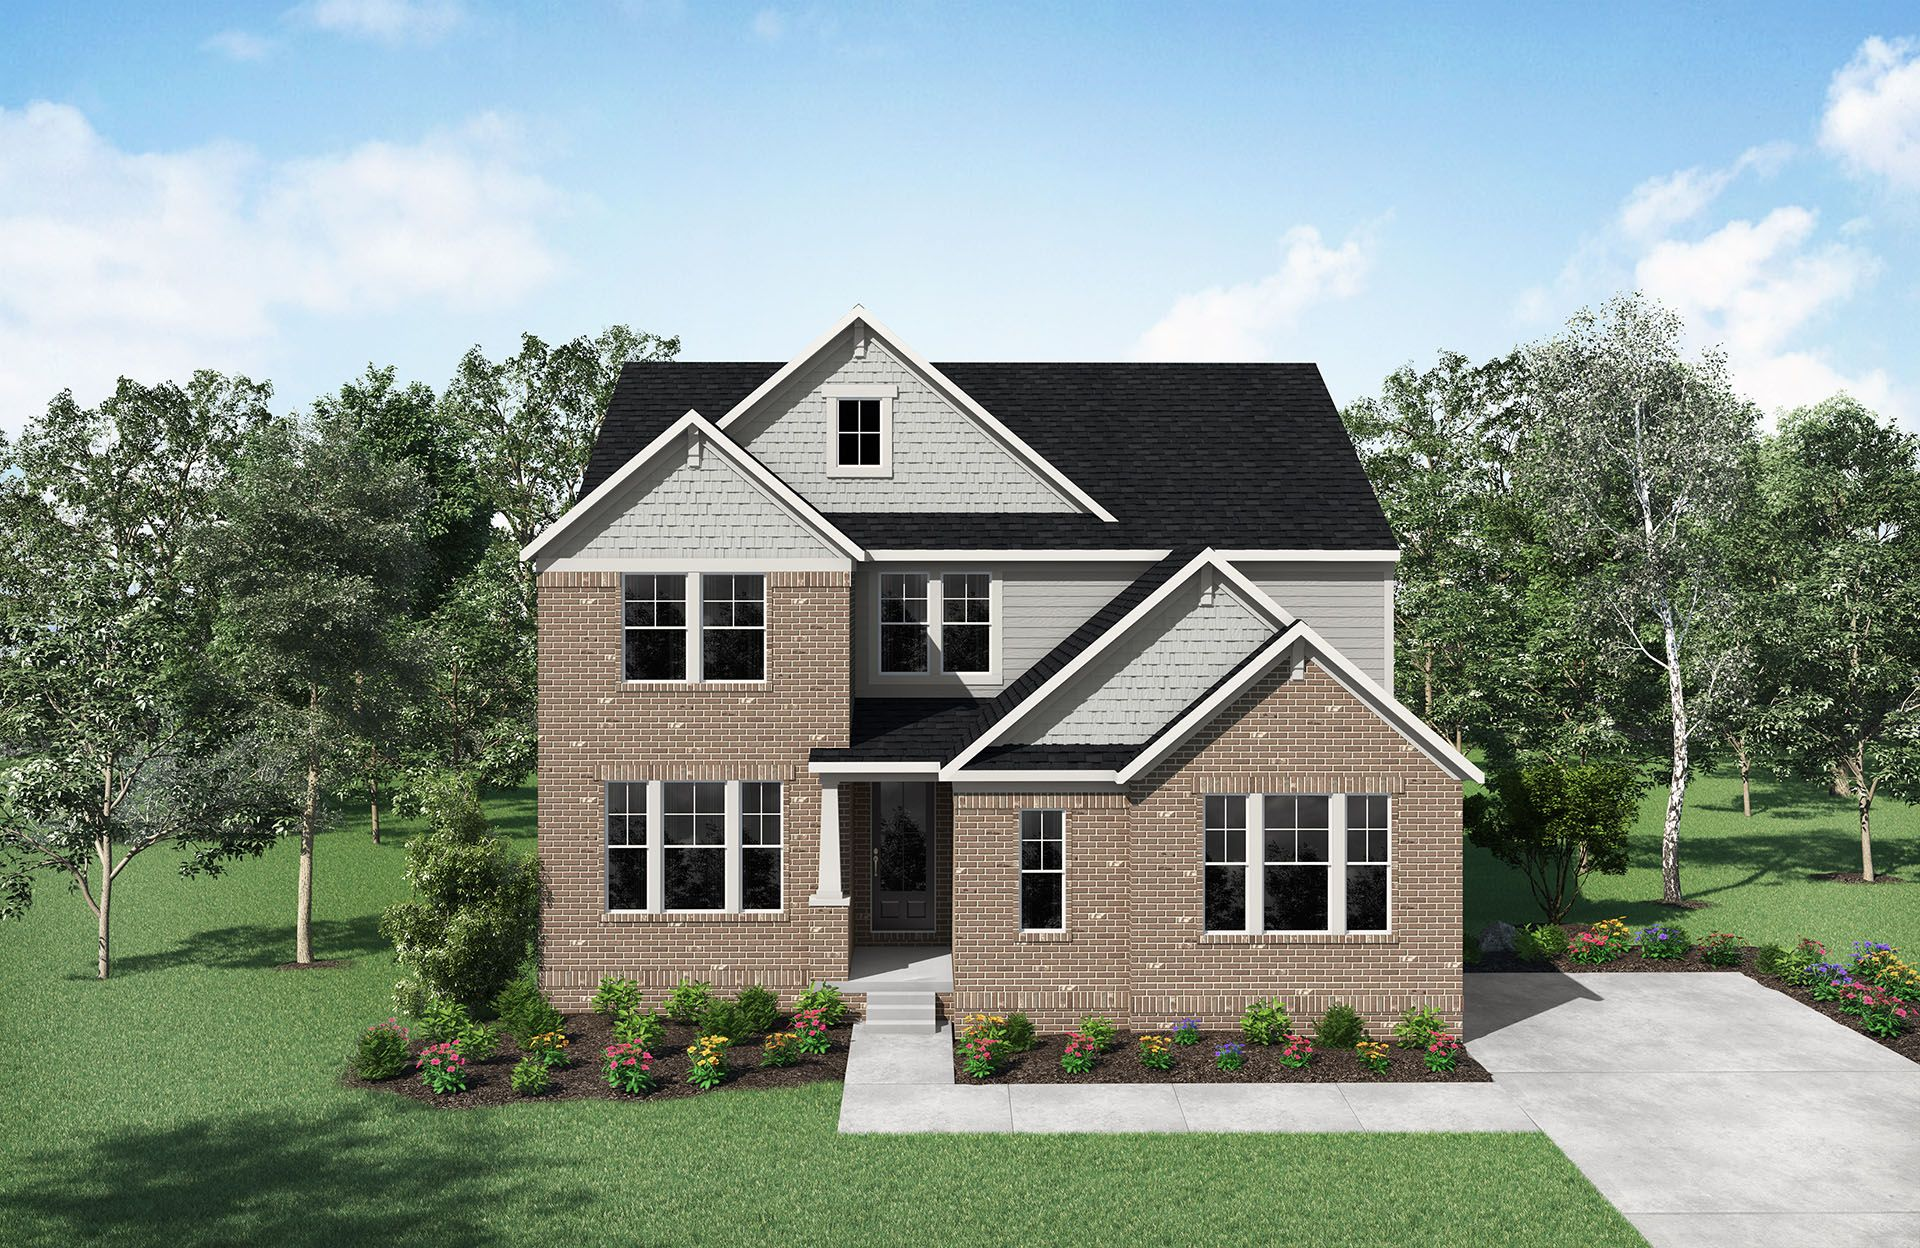 Single Family for Sale at River Oaks - The Manor - Everly Lebanon, Tennessee 37090 United States